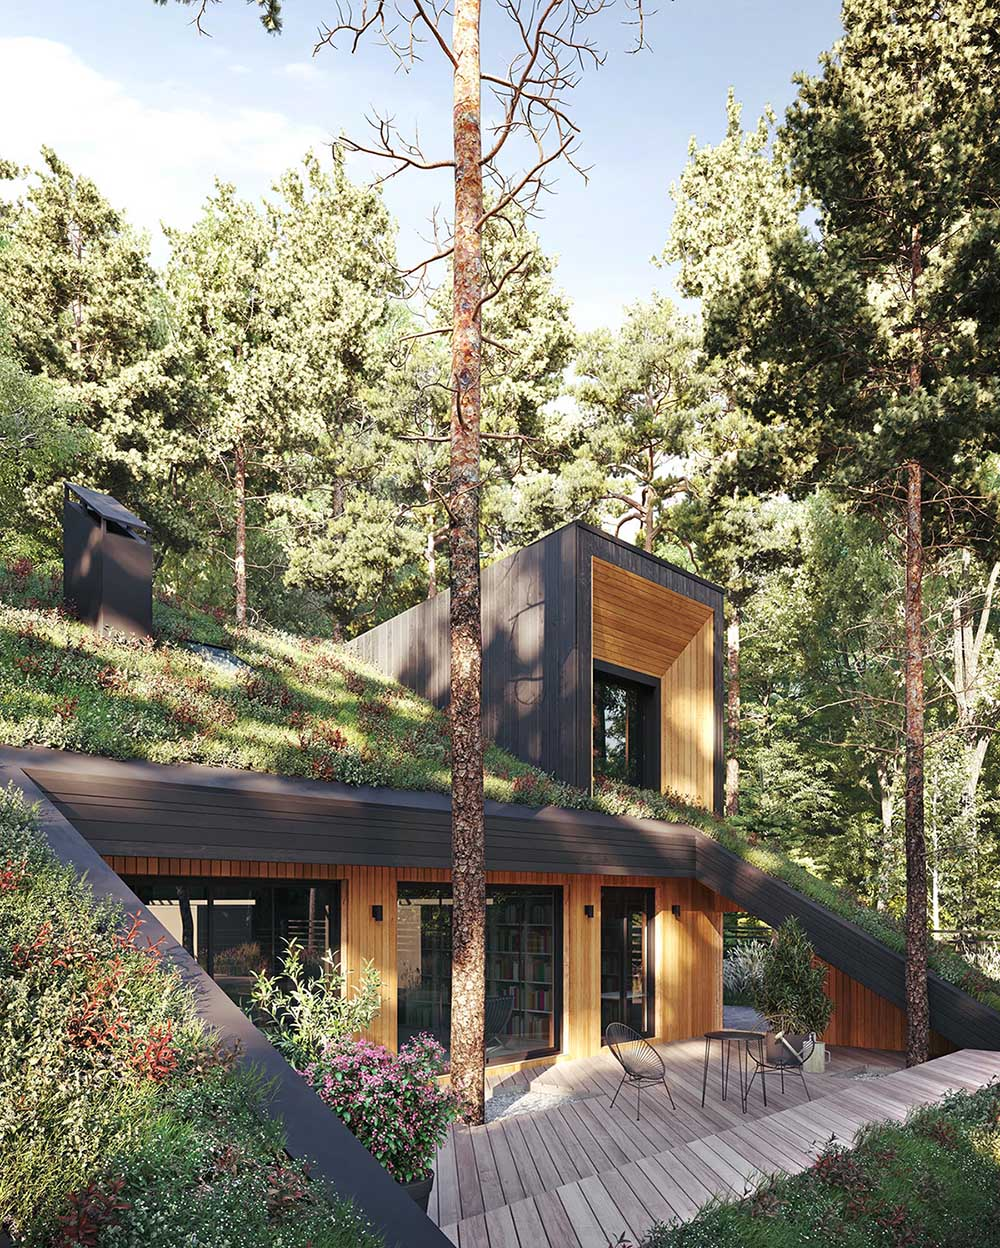 A modern house with a sloped green roof.